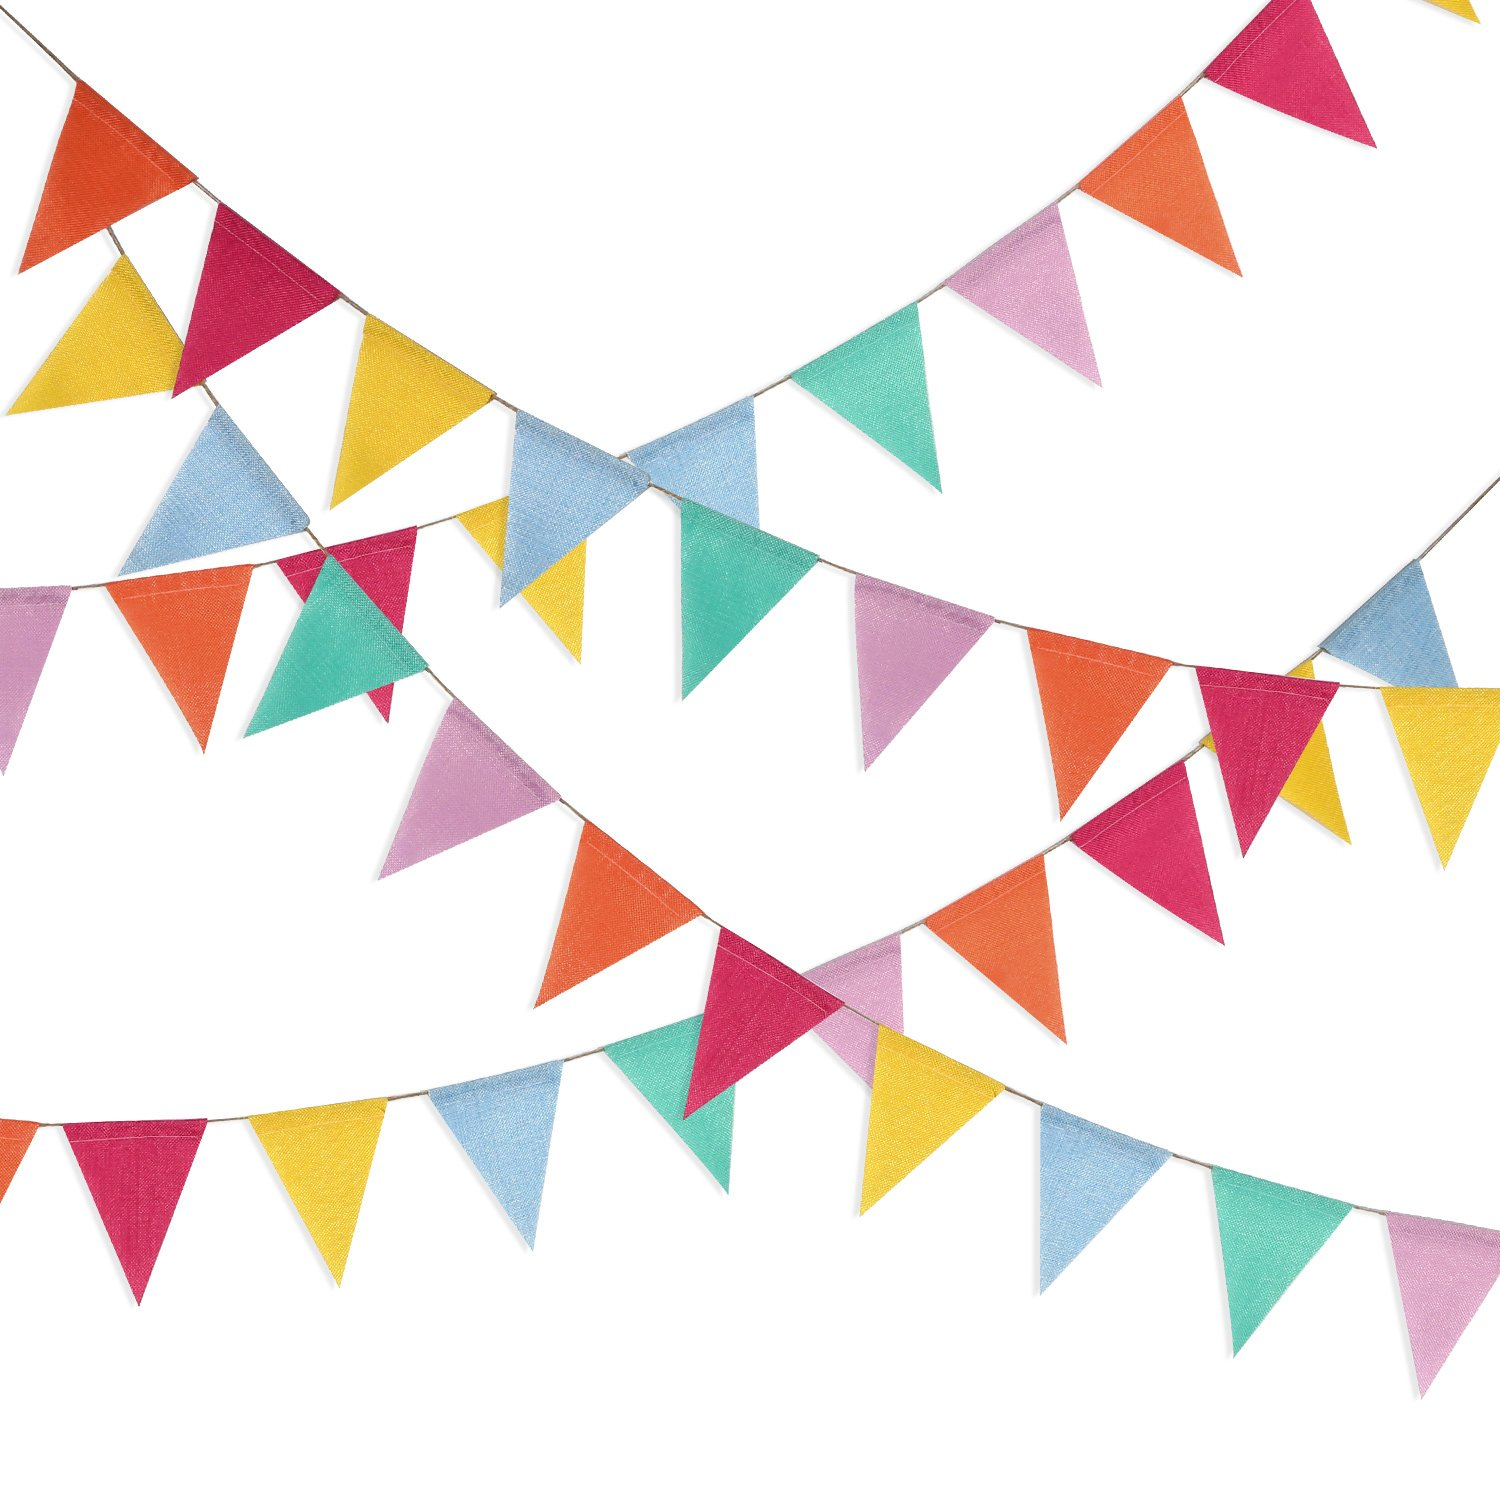 Hestya 32.8 Feet Pennant Banner 42 Pieces Triangle Flag Bunting for Party Hanging Decoration by Hestya